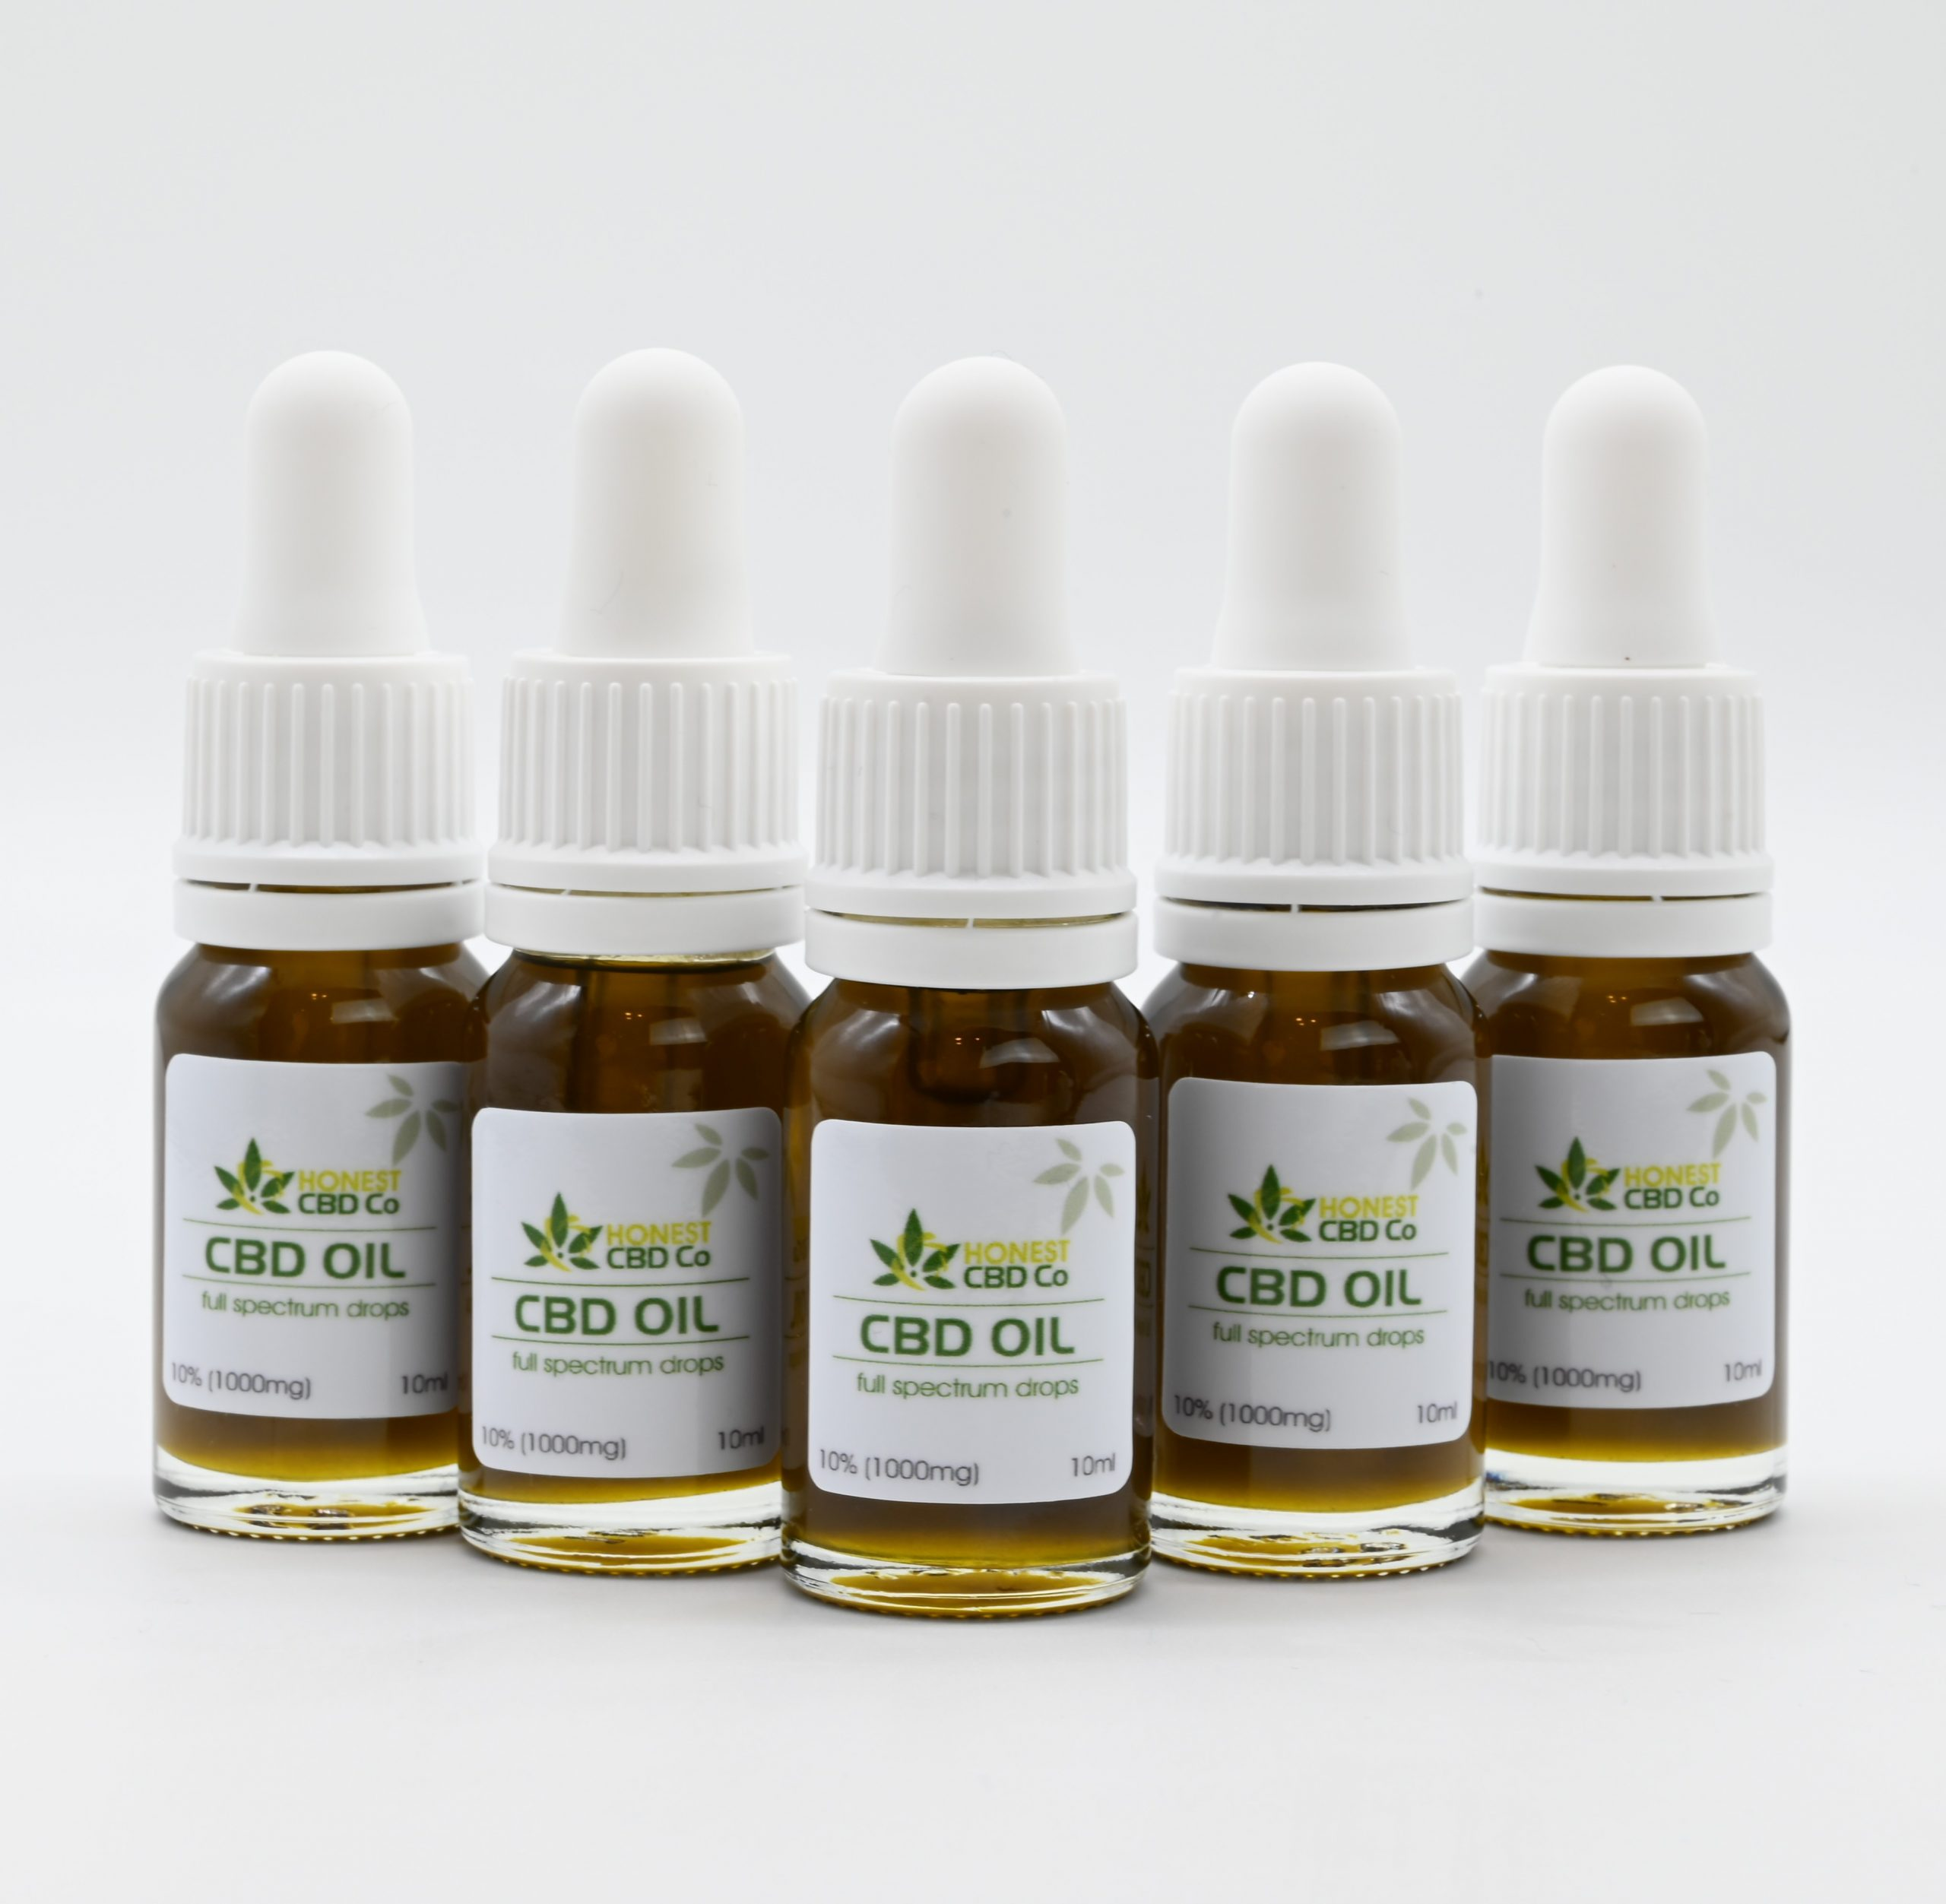 10% Full Spectrum CBD Oil - x5